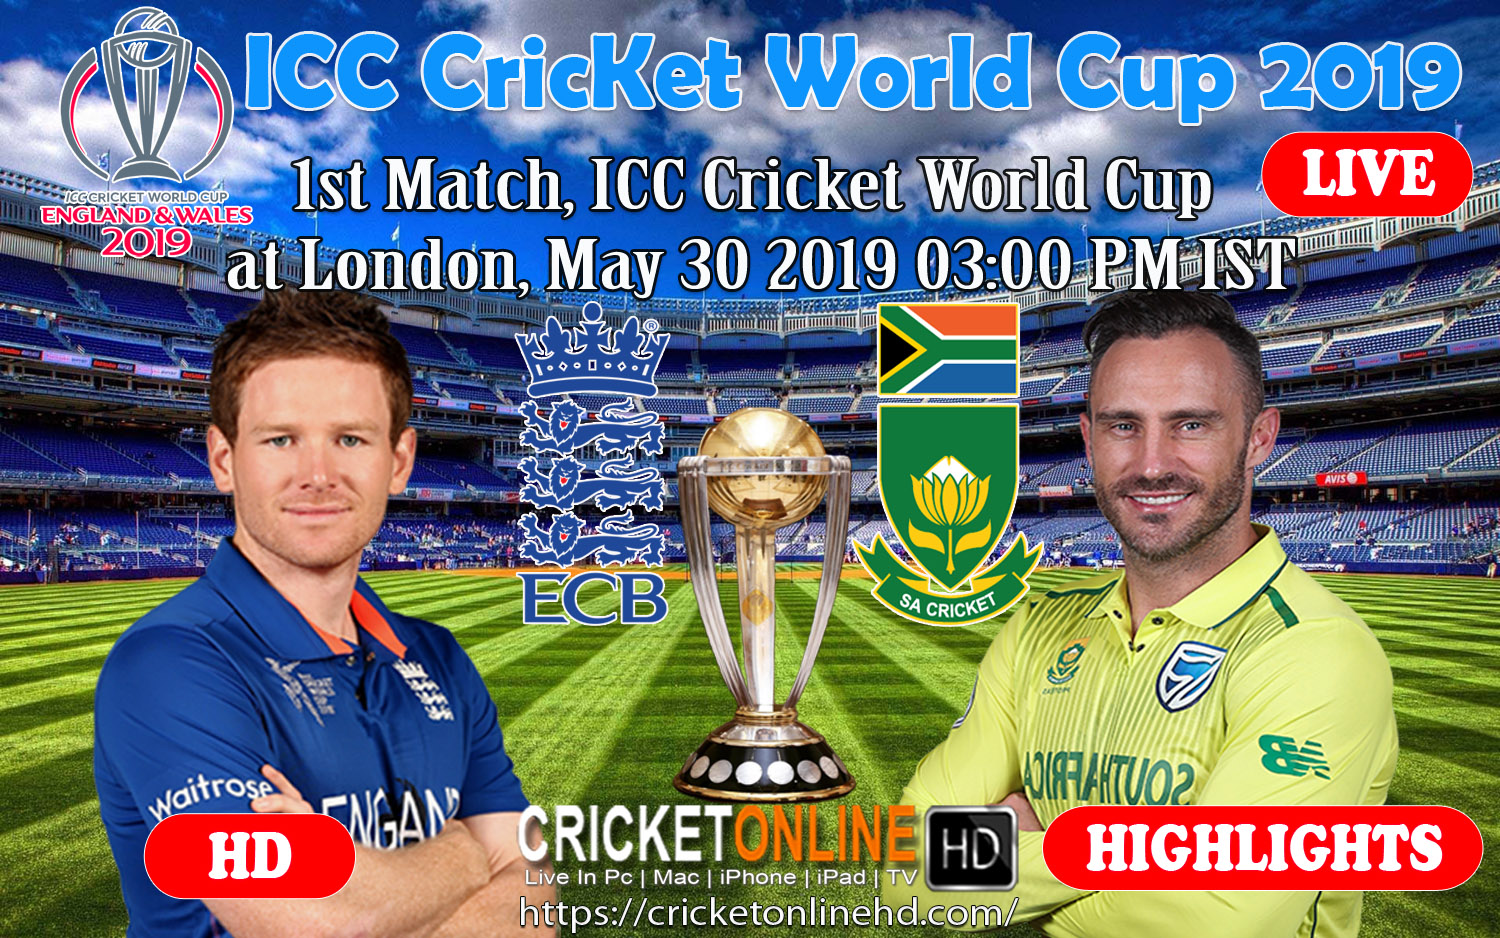 1st match, ICC Cricket World Cup at London, May 30 2019